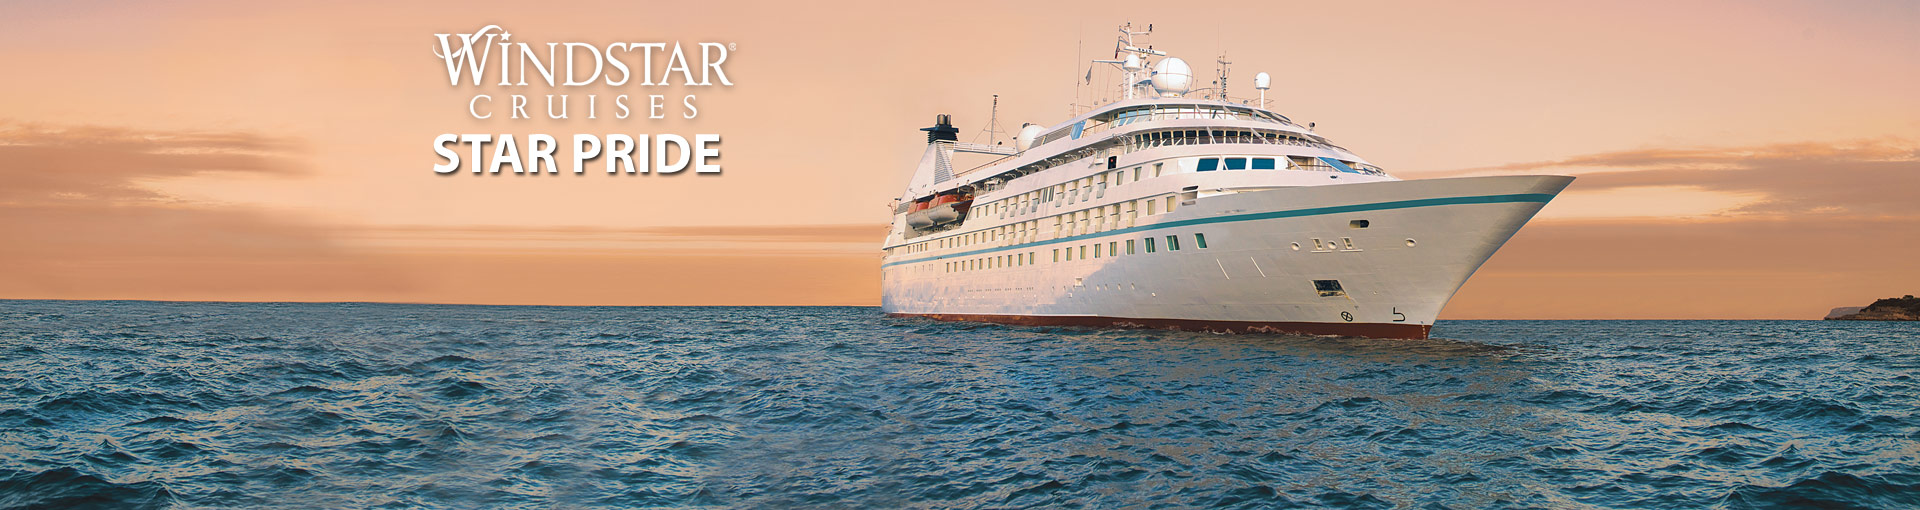 Windstar Cruises Star Pride Cruise Ship